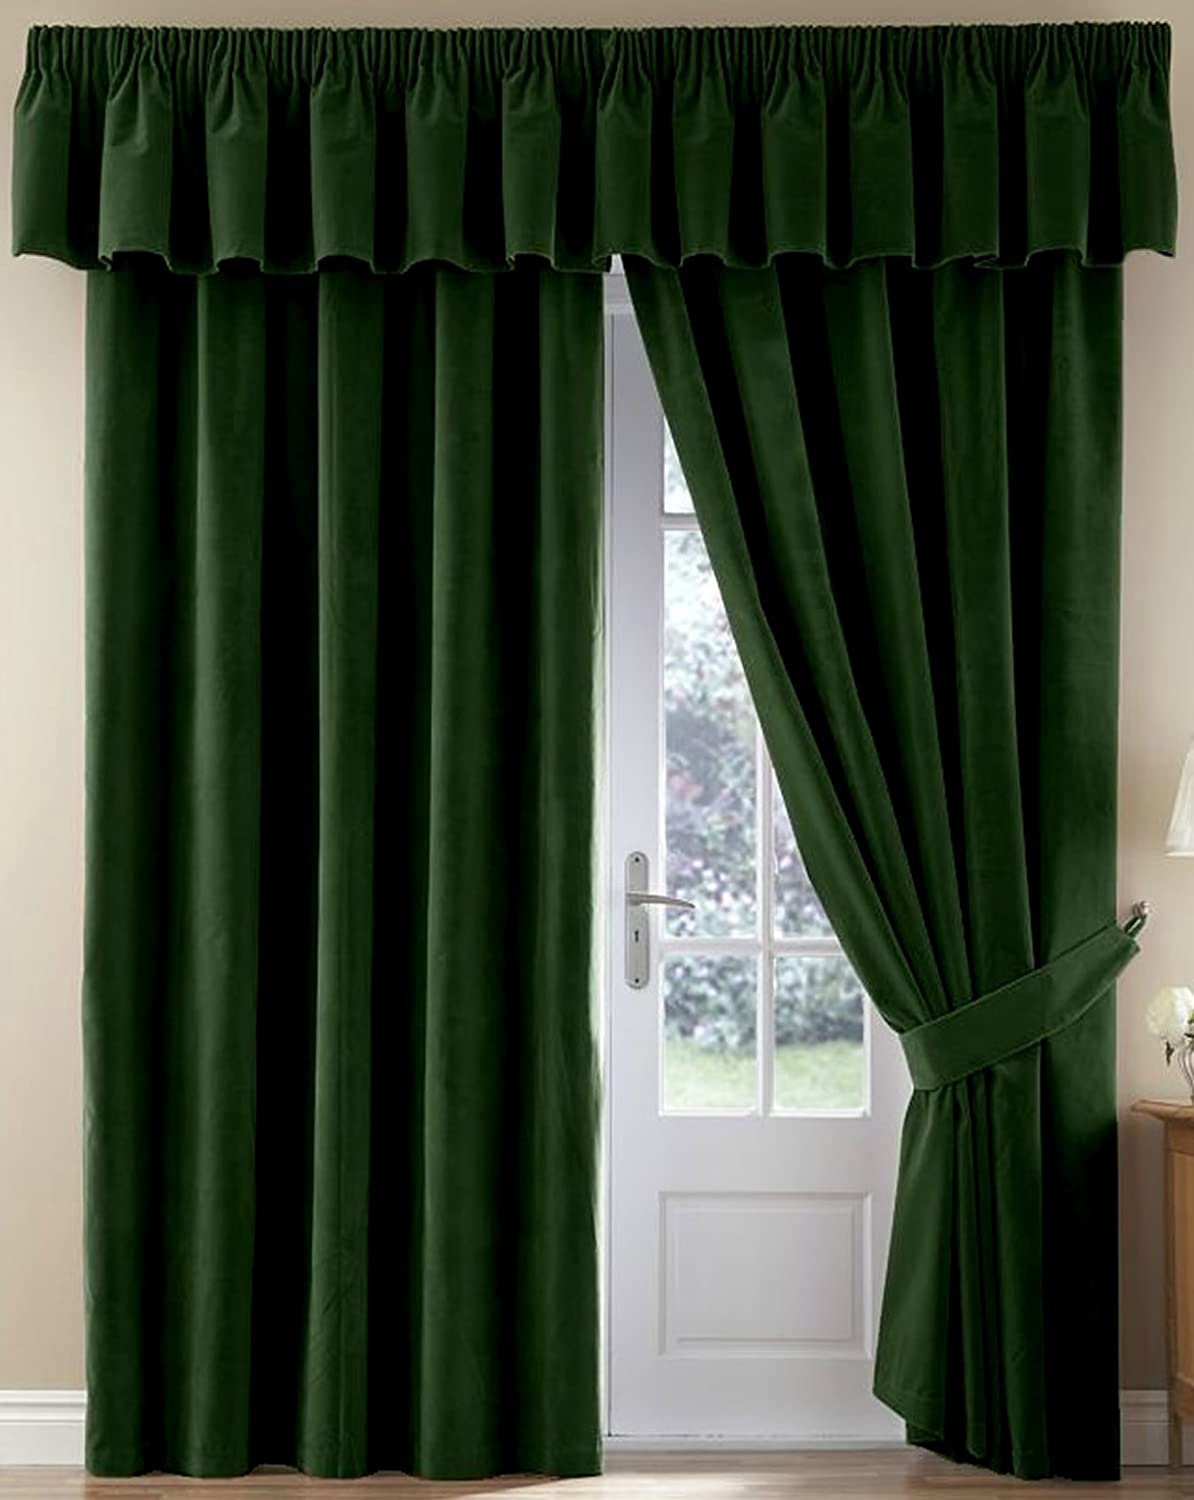 Design Velvet Curtains thermal velour velvet curtains finished in terracotta 46 wide x 42 drop amazon co uk kitchen home